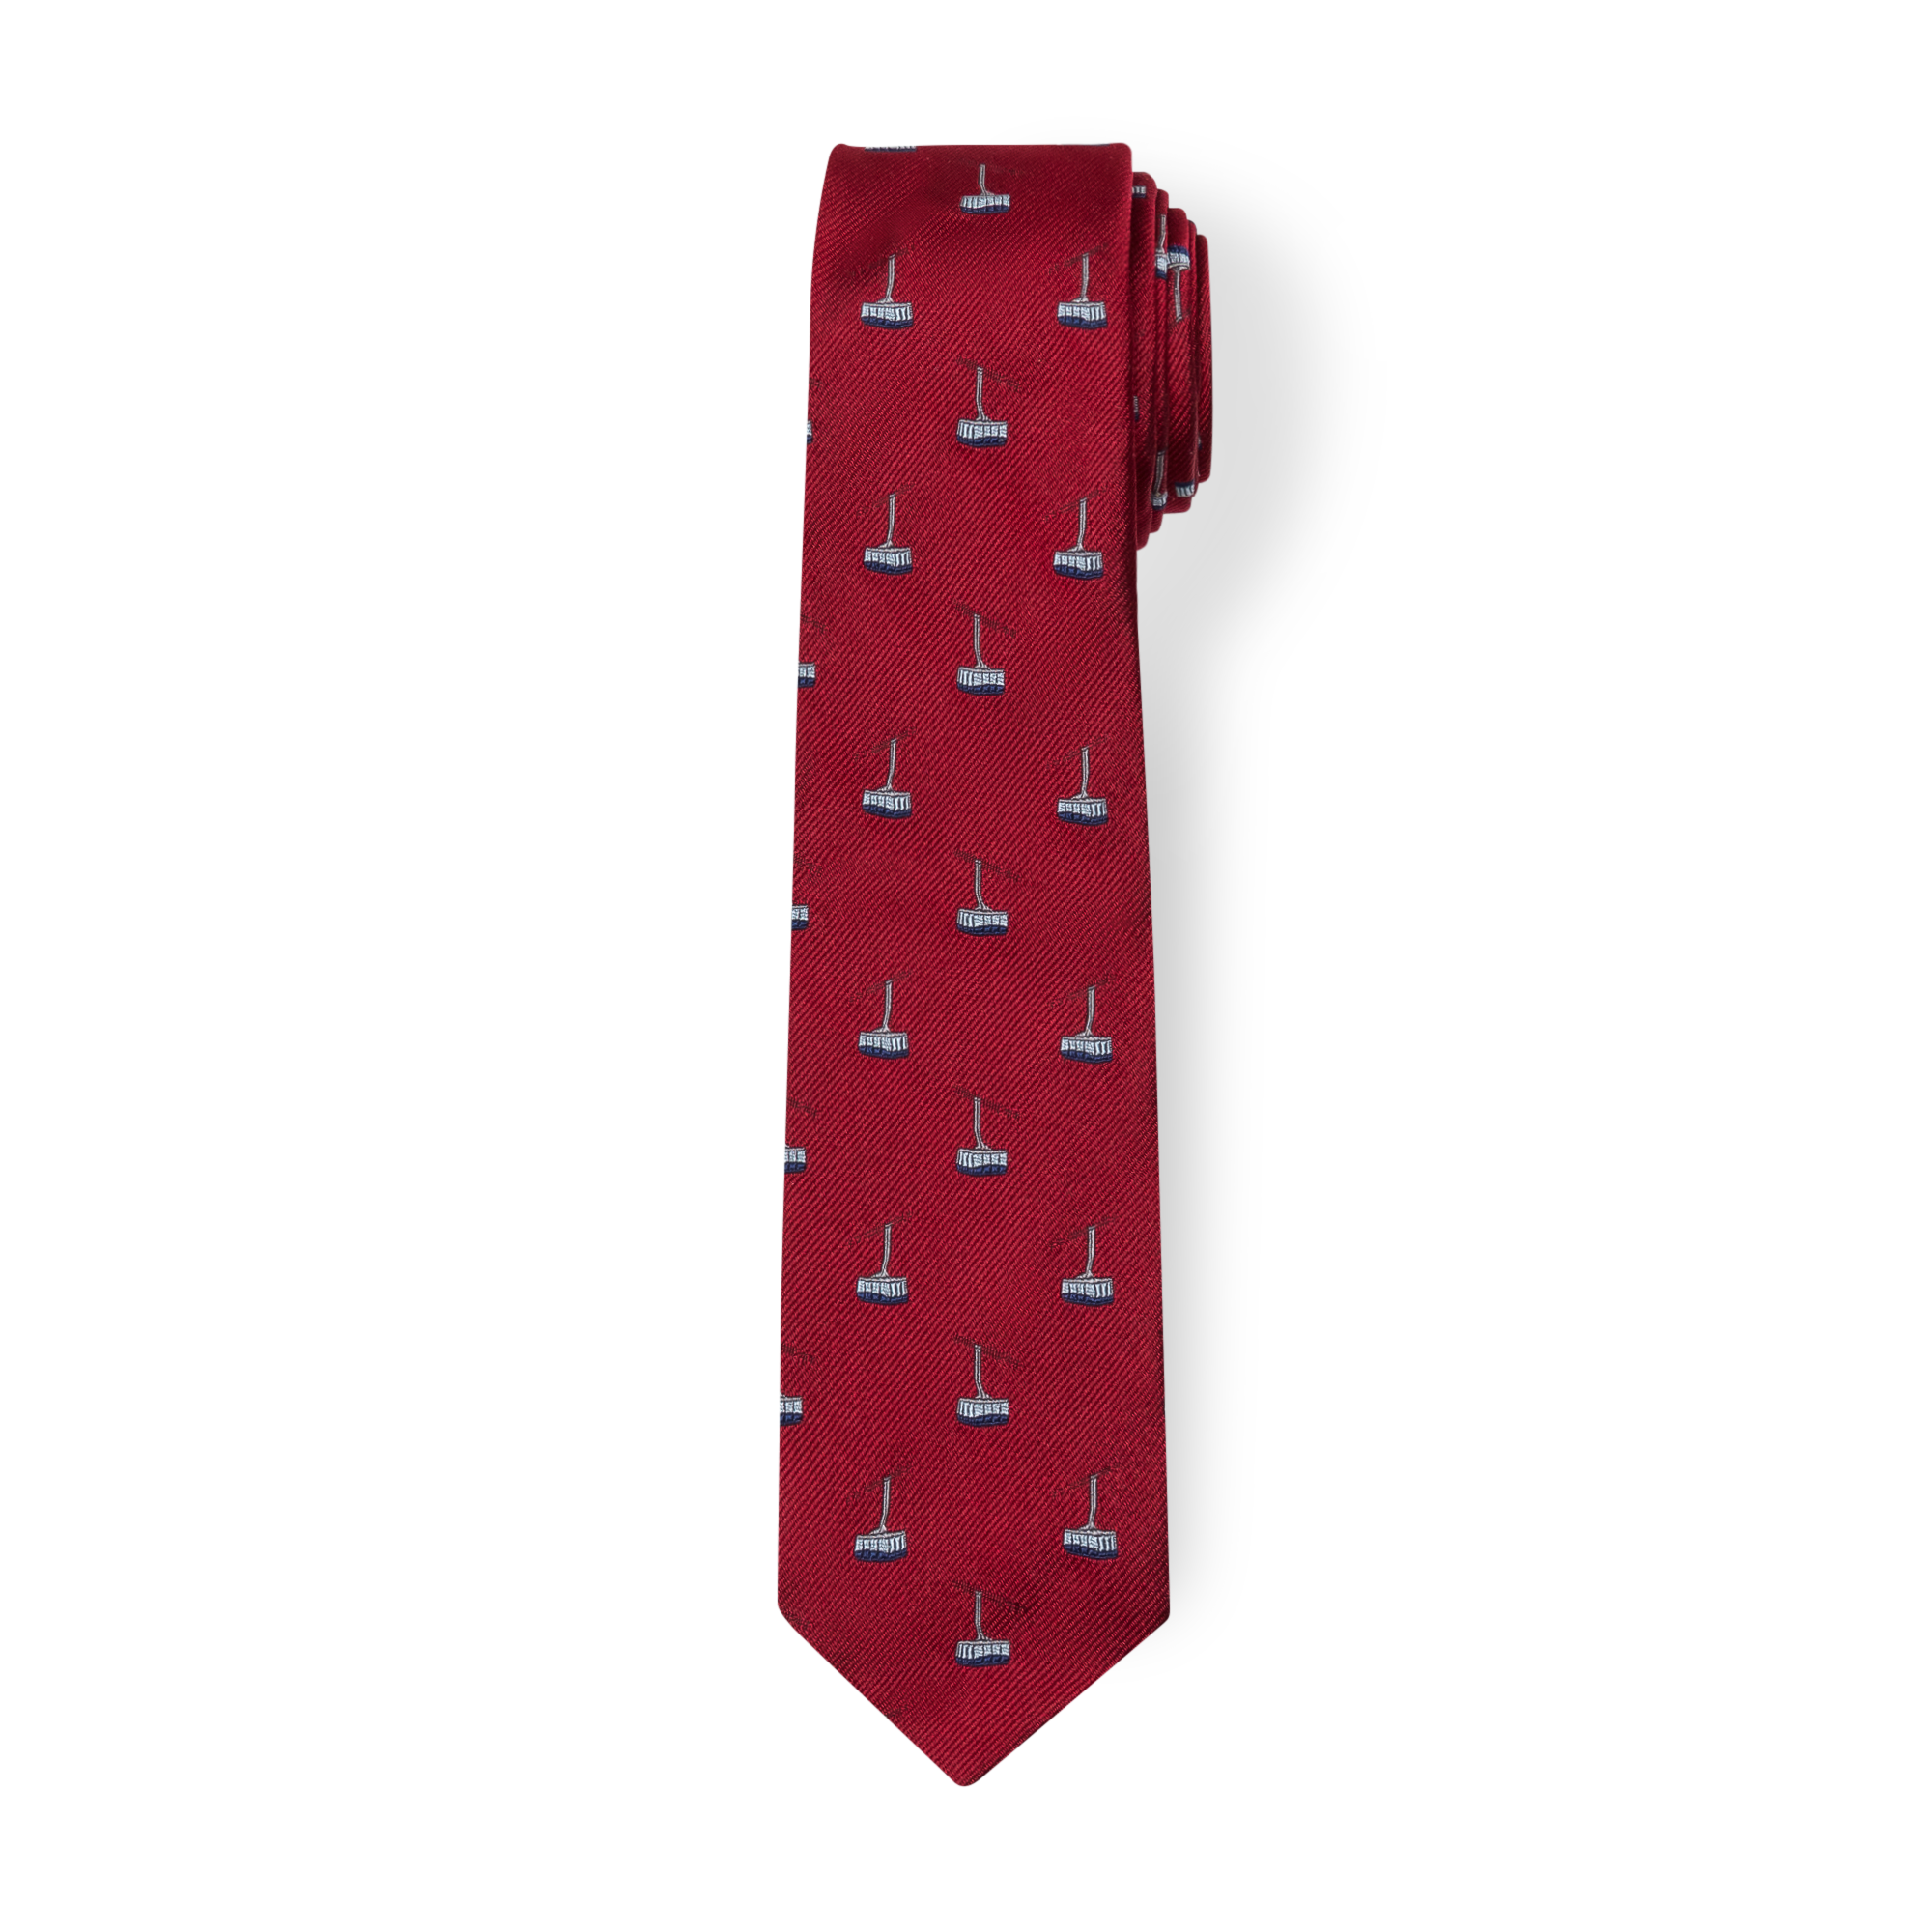 red tie product photography